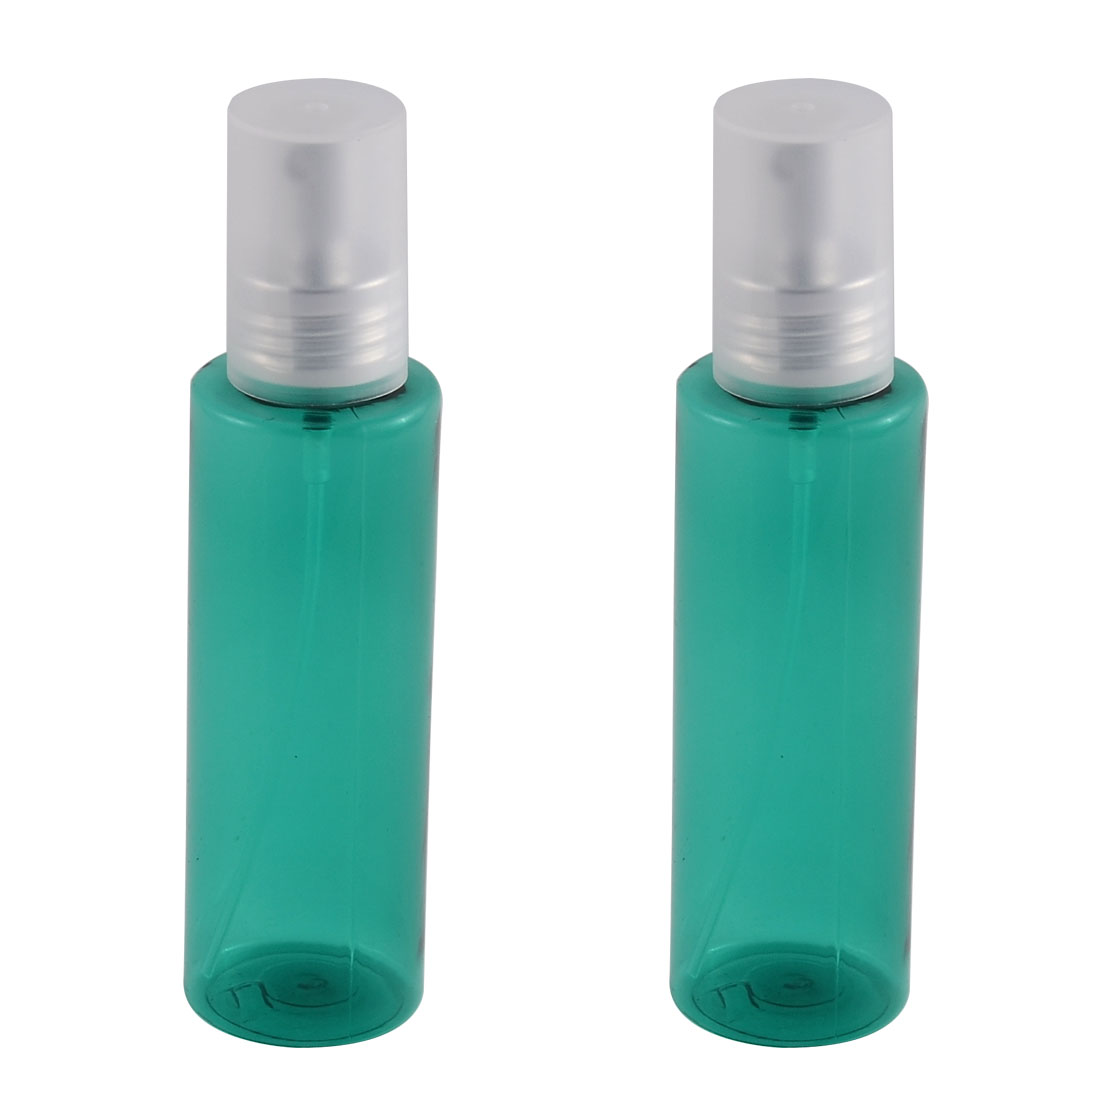 Traveling Plastic Shampoo Cosmetic Emulsion Press Pump Spray Bottle Green 100ml 2pcs